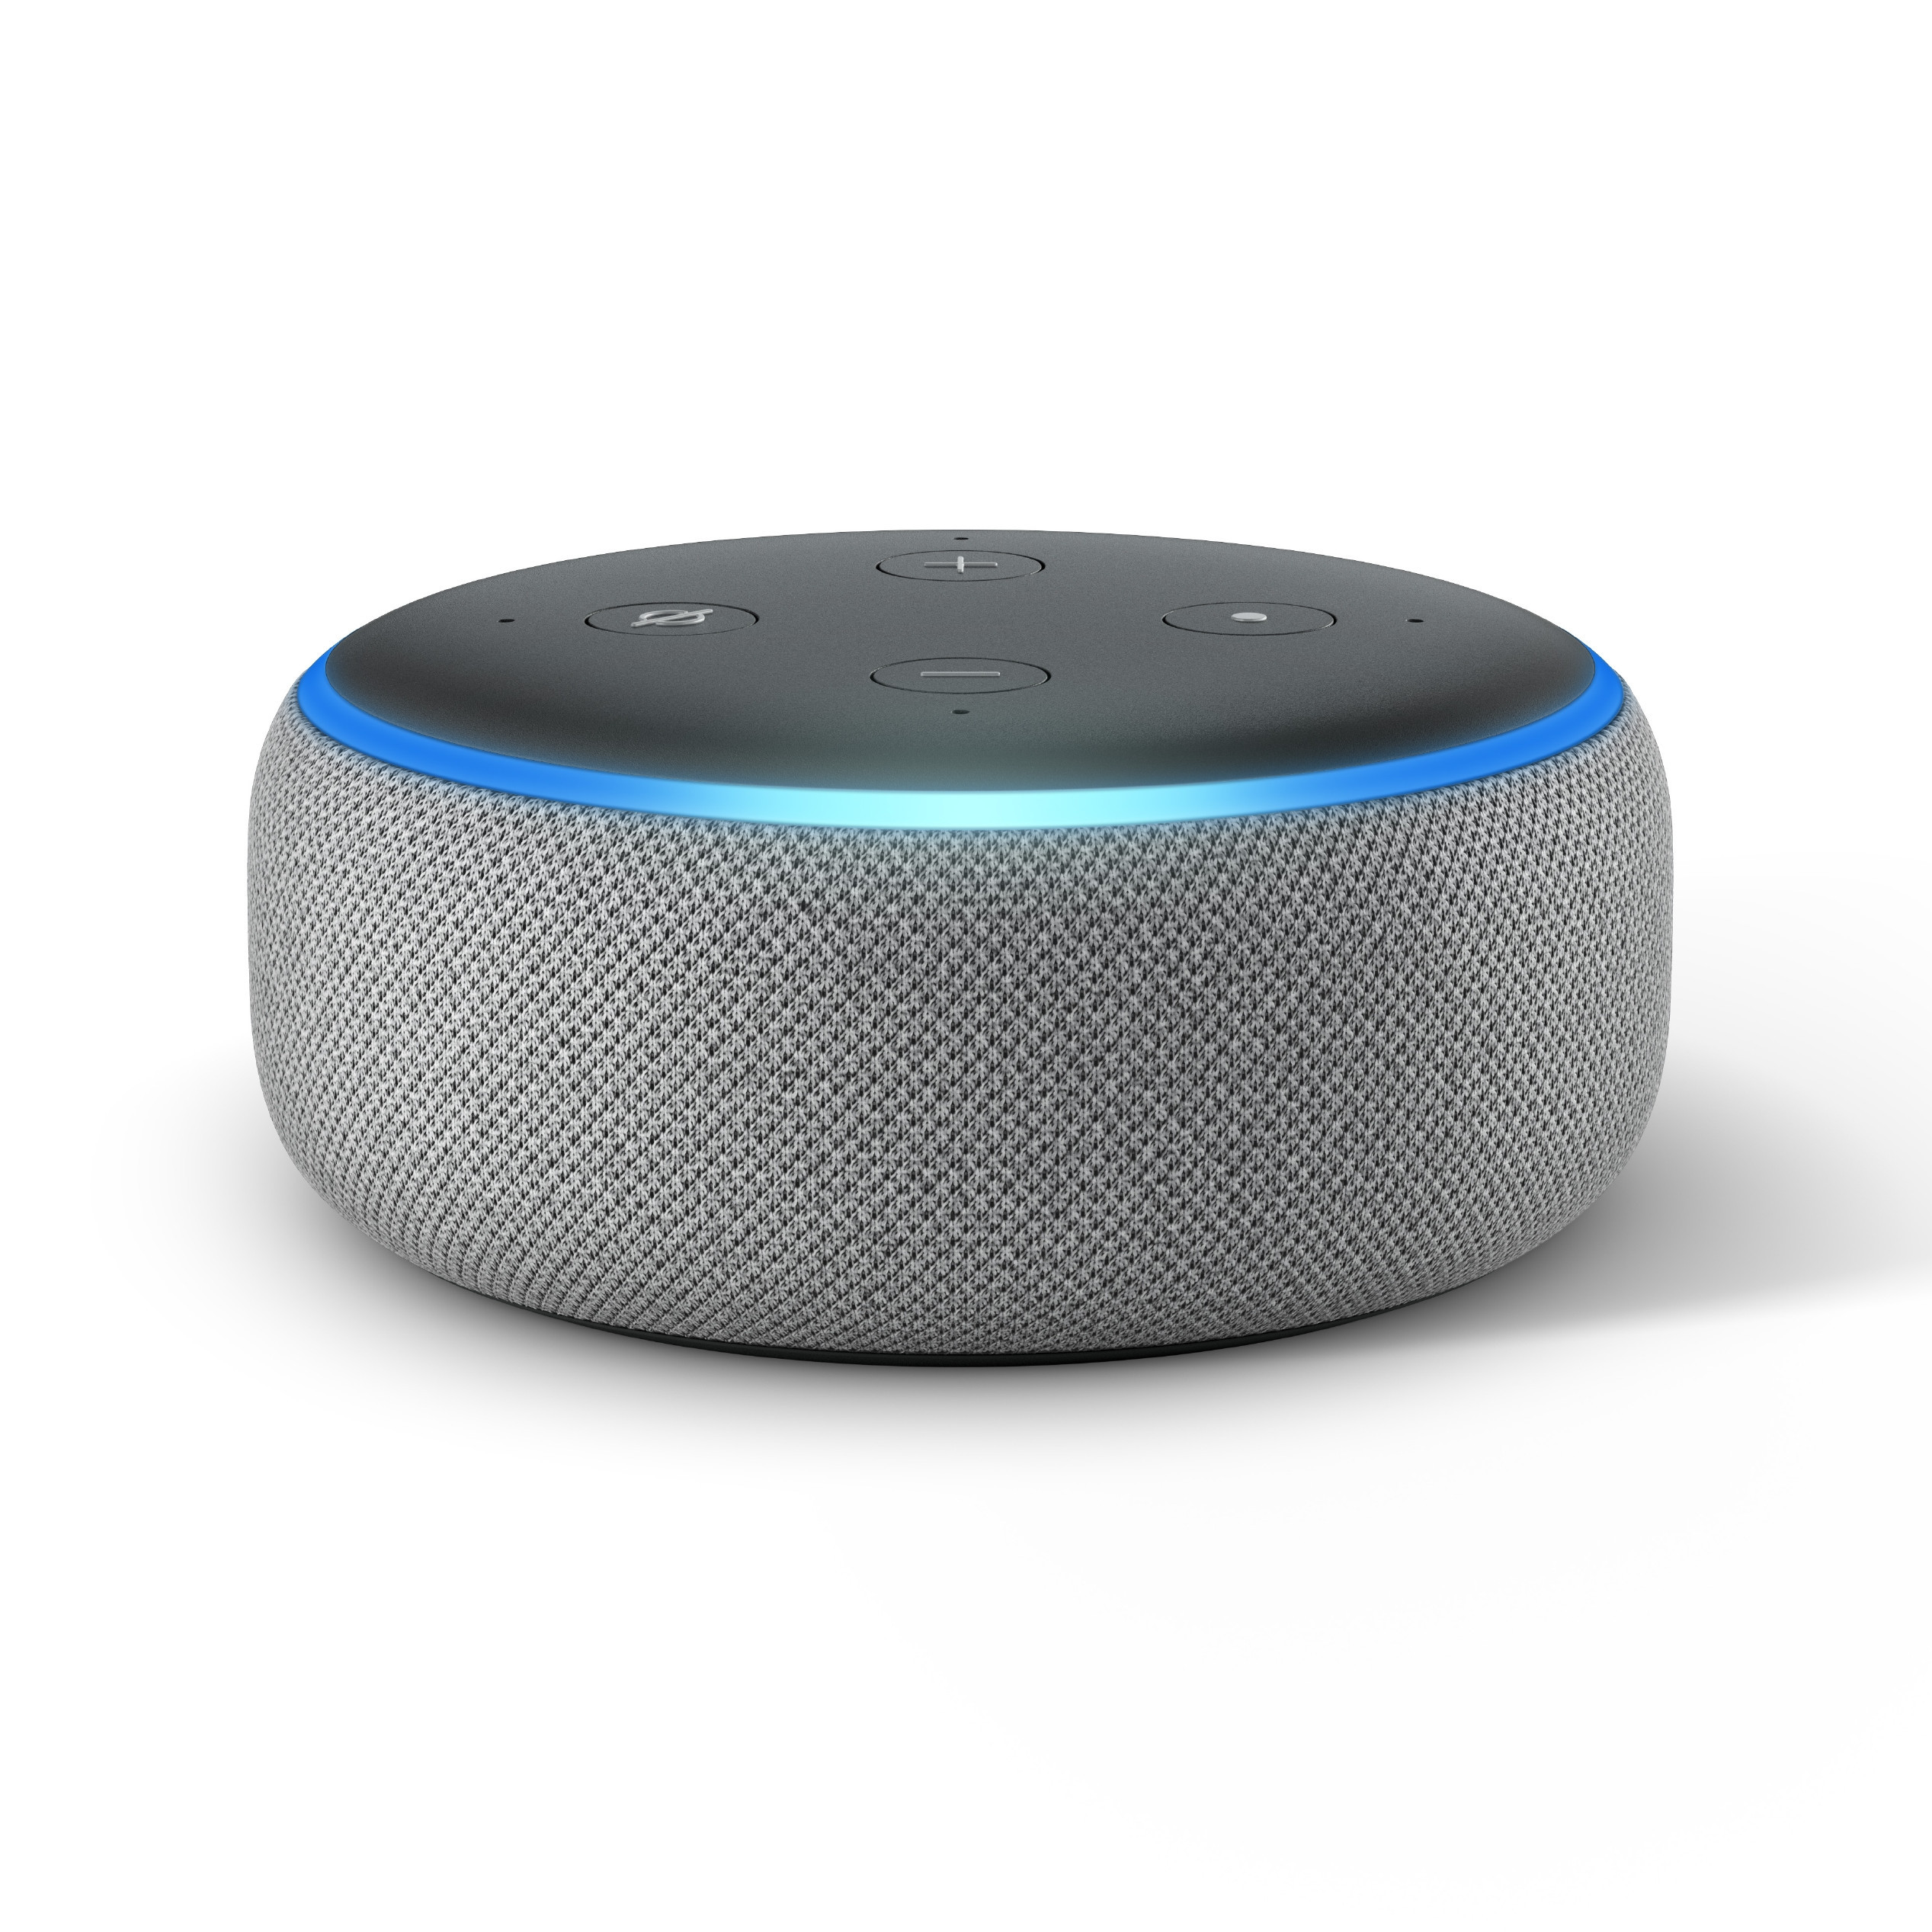 bon plan l enceinte connect e amazon echo dot 3 29 99 euros. Black Bedroom Furniture Sets. Home Design Ideas